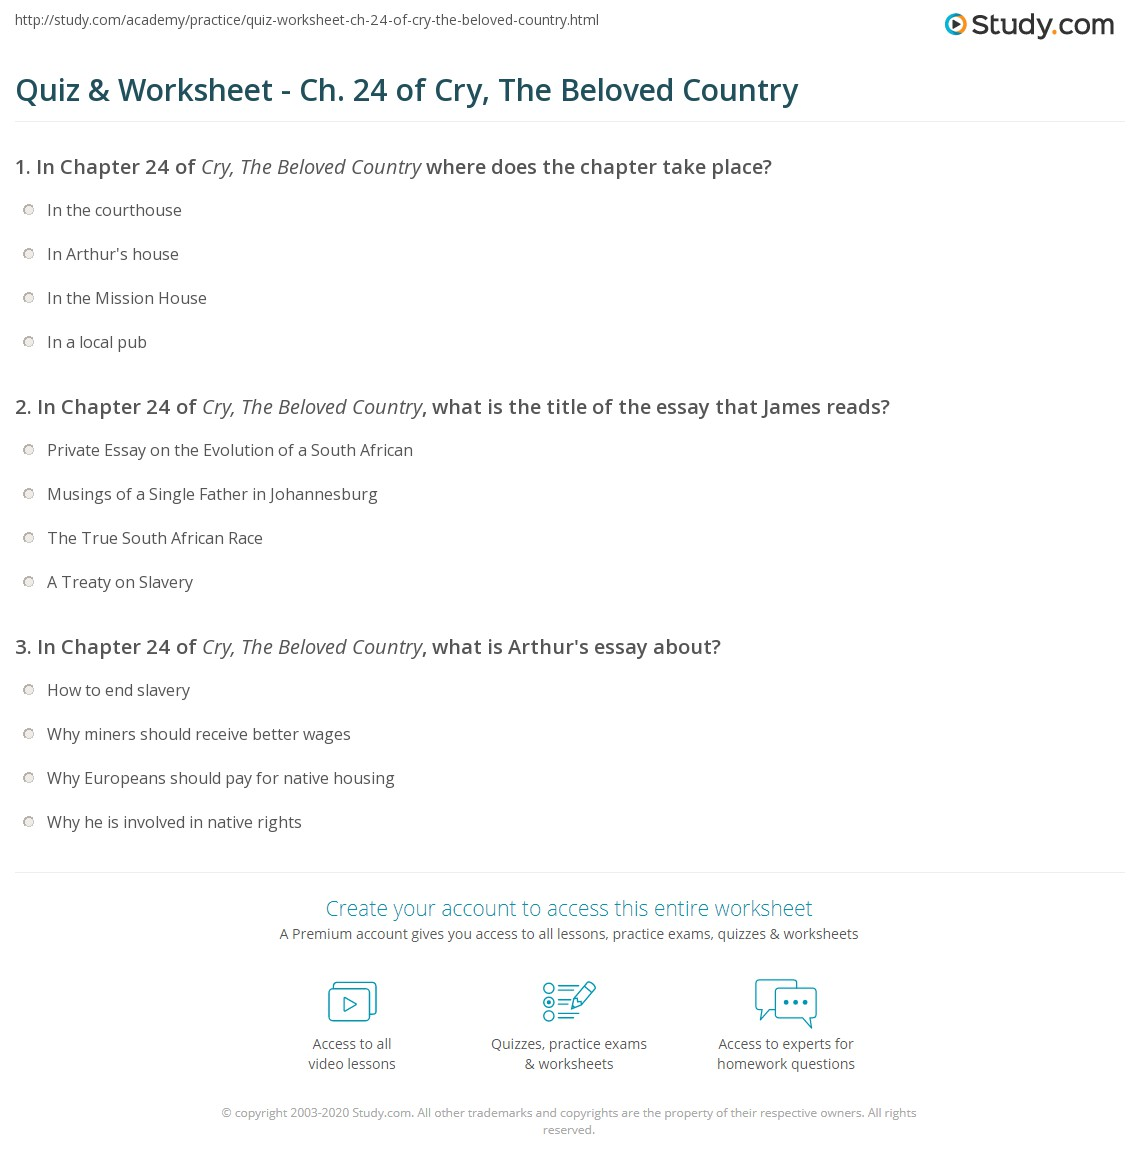 Quiz & Worksheet - Ch. 24 of Cry, The Beloved Country | Study.com